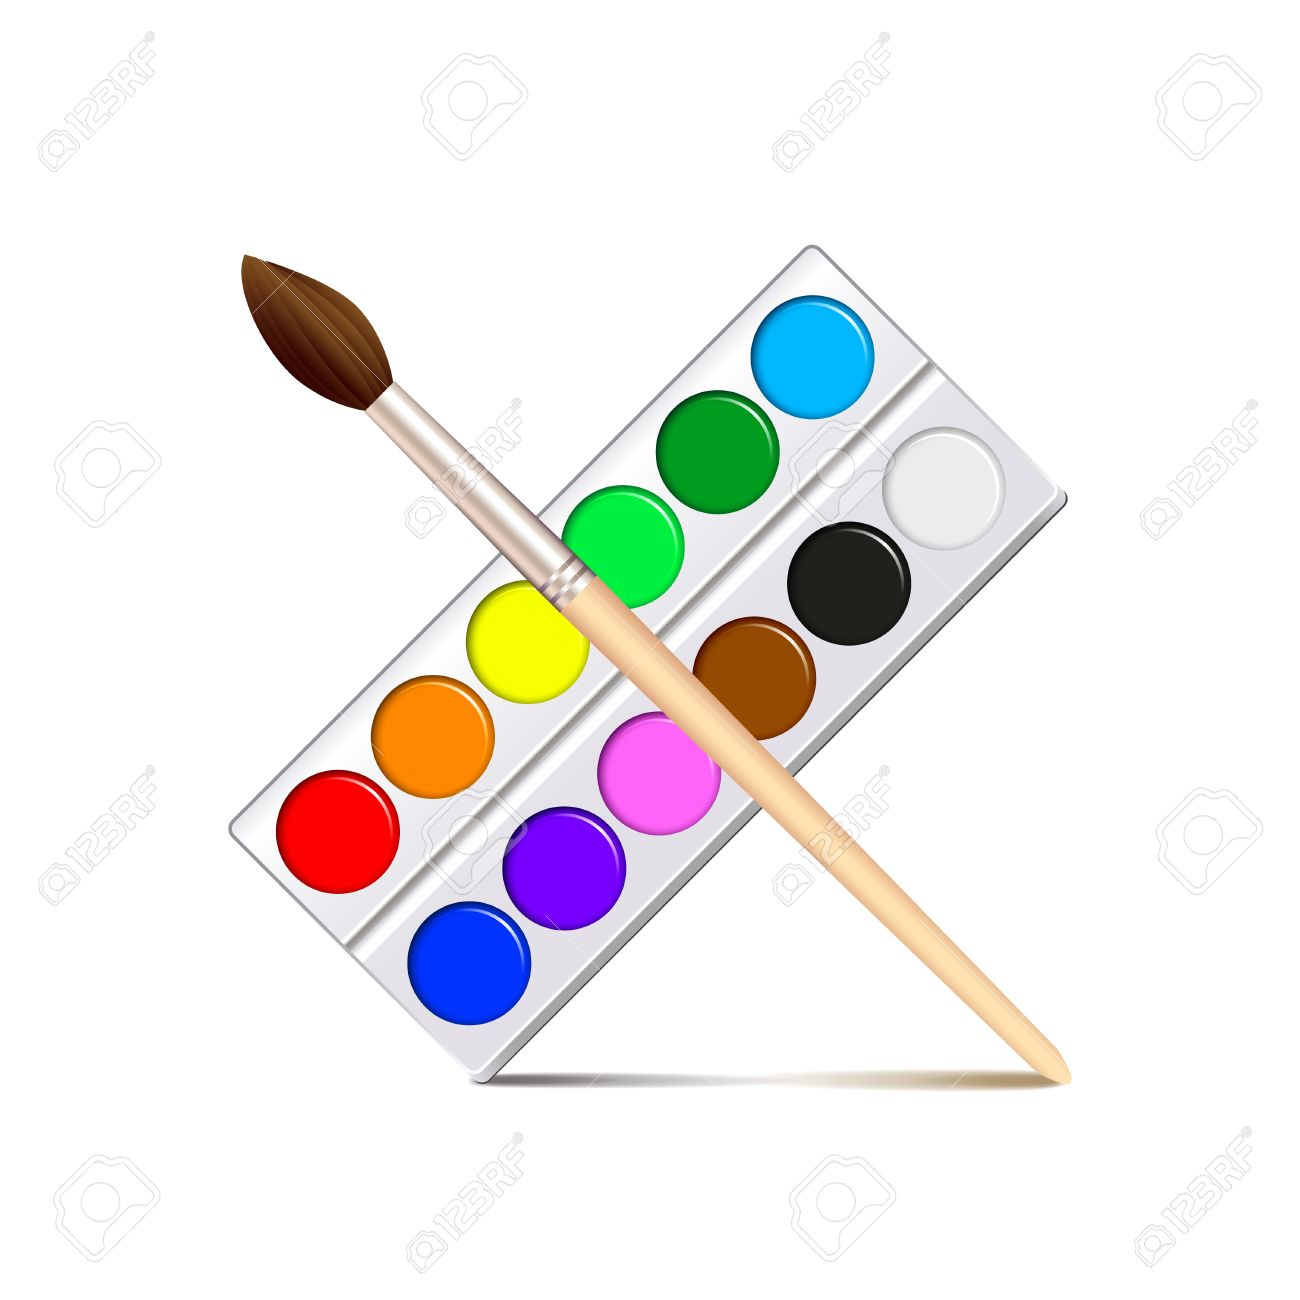 Watercolor Painting Clipart.